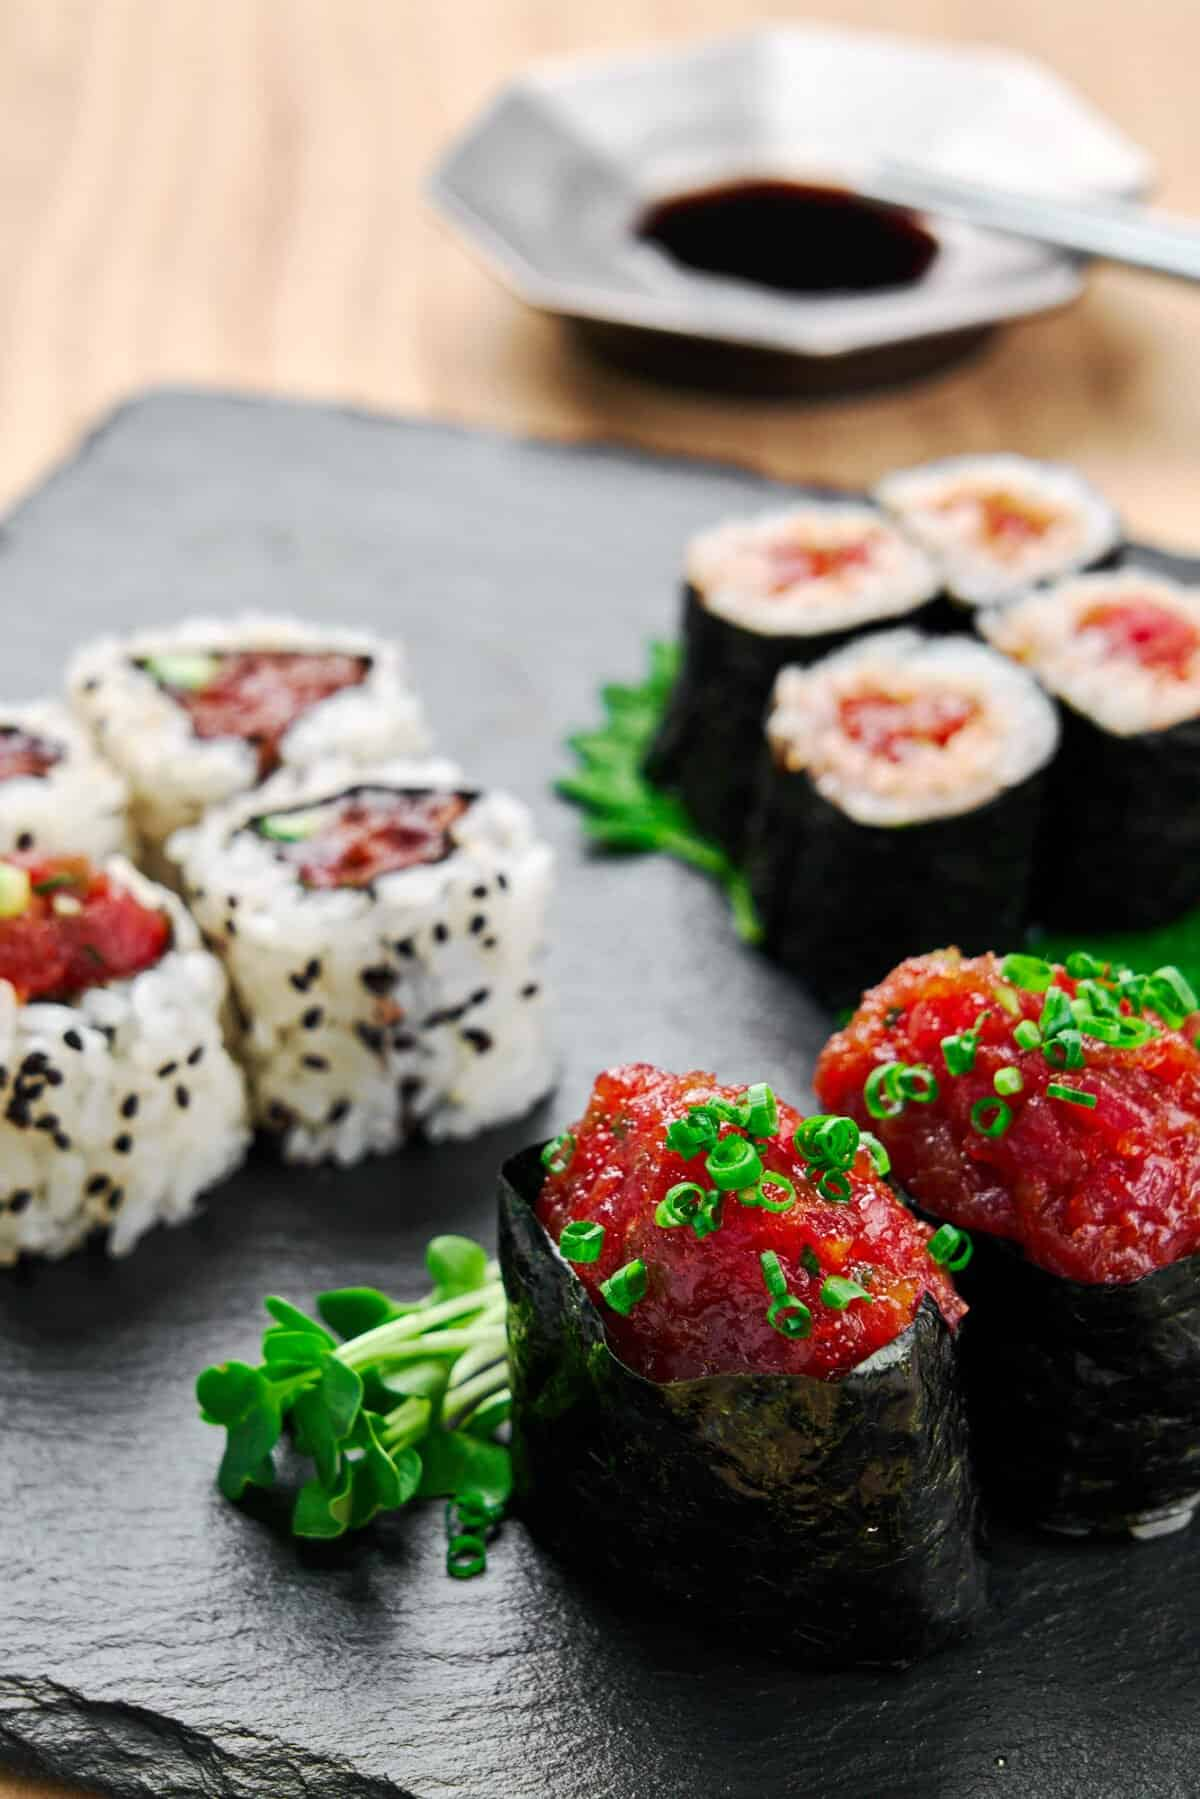 Make delicious spicy tuna rolls at home, just like your favorite sushi restaurant, with this easy to follow tutorial. Delicious spicy tuna filling recipe along with a step-by-step video on how to roll it 3 different ways.